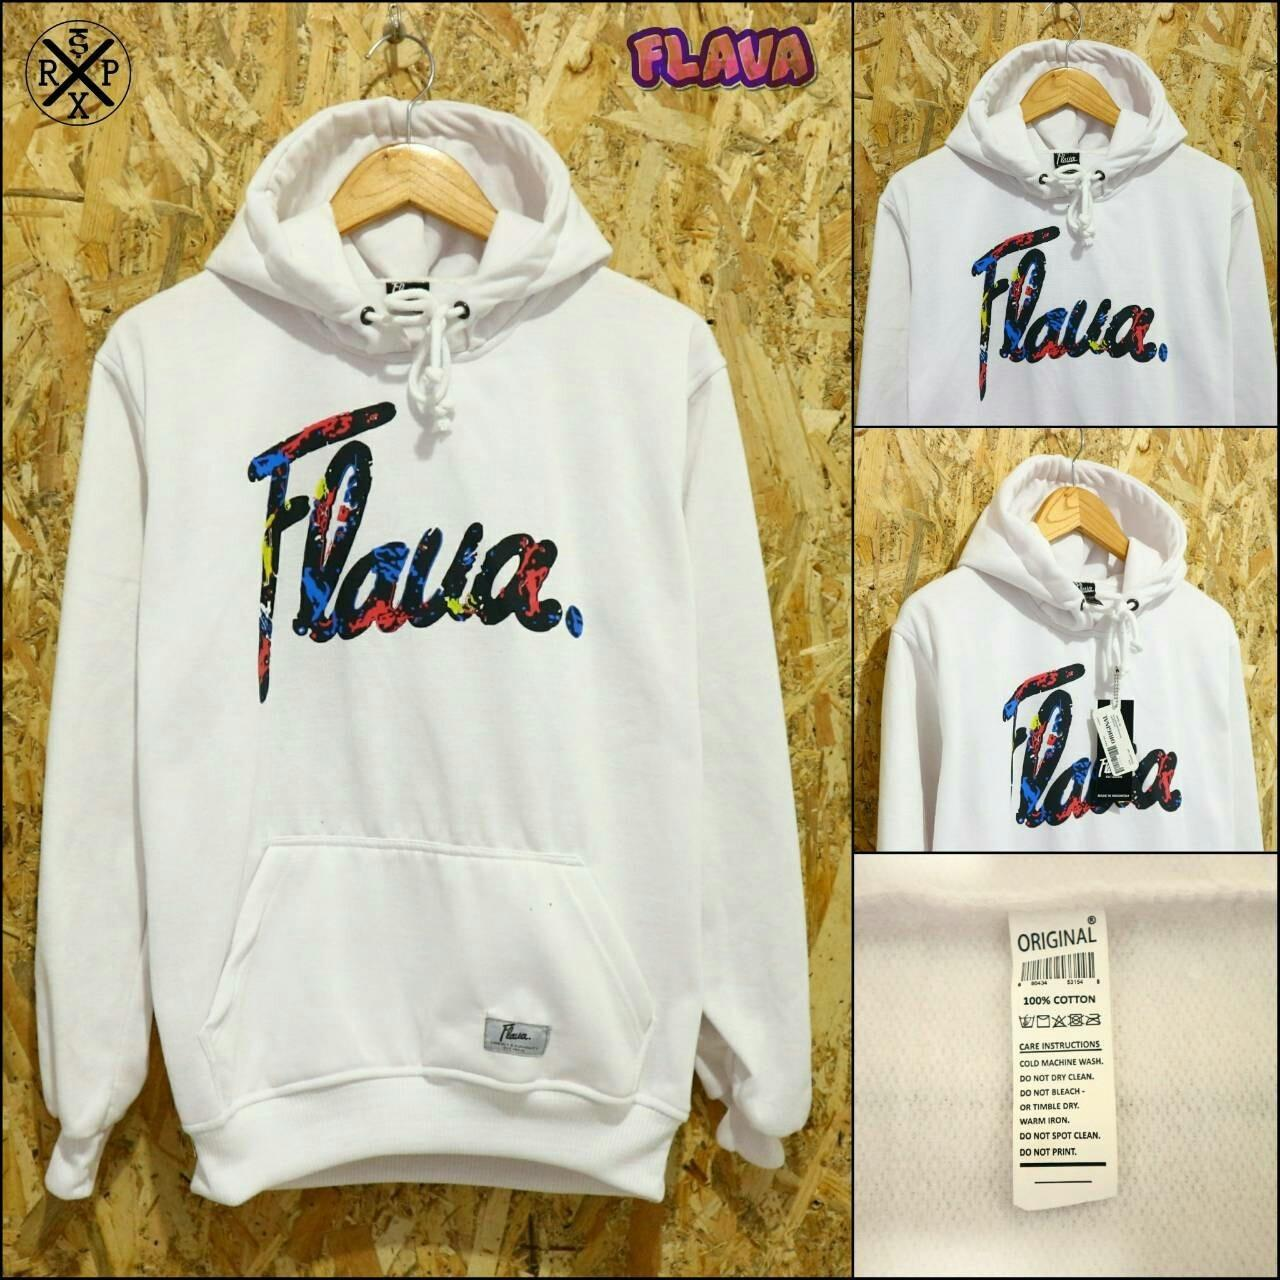 WEAR Jaket Sweater Hoodie Flava White